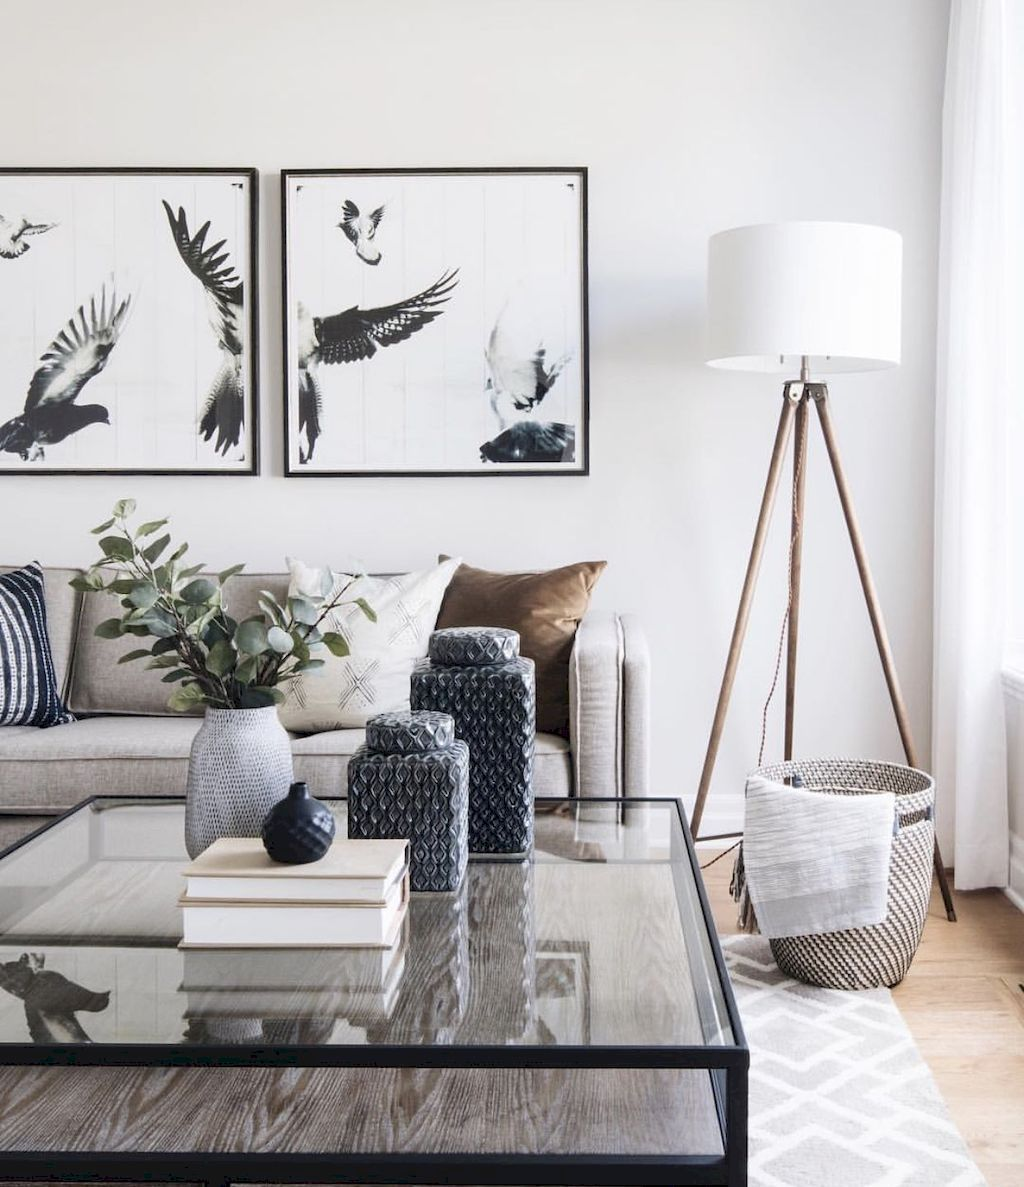 Small Tips And 80 Scandinavian Style Living Room Ideas Https Decorationplan Com S Living Room Scandinavian Scandinavian Design Living Room Nordic Living Room S living room decor